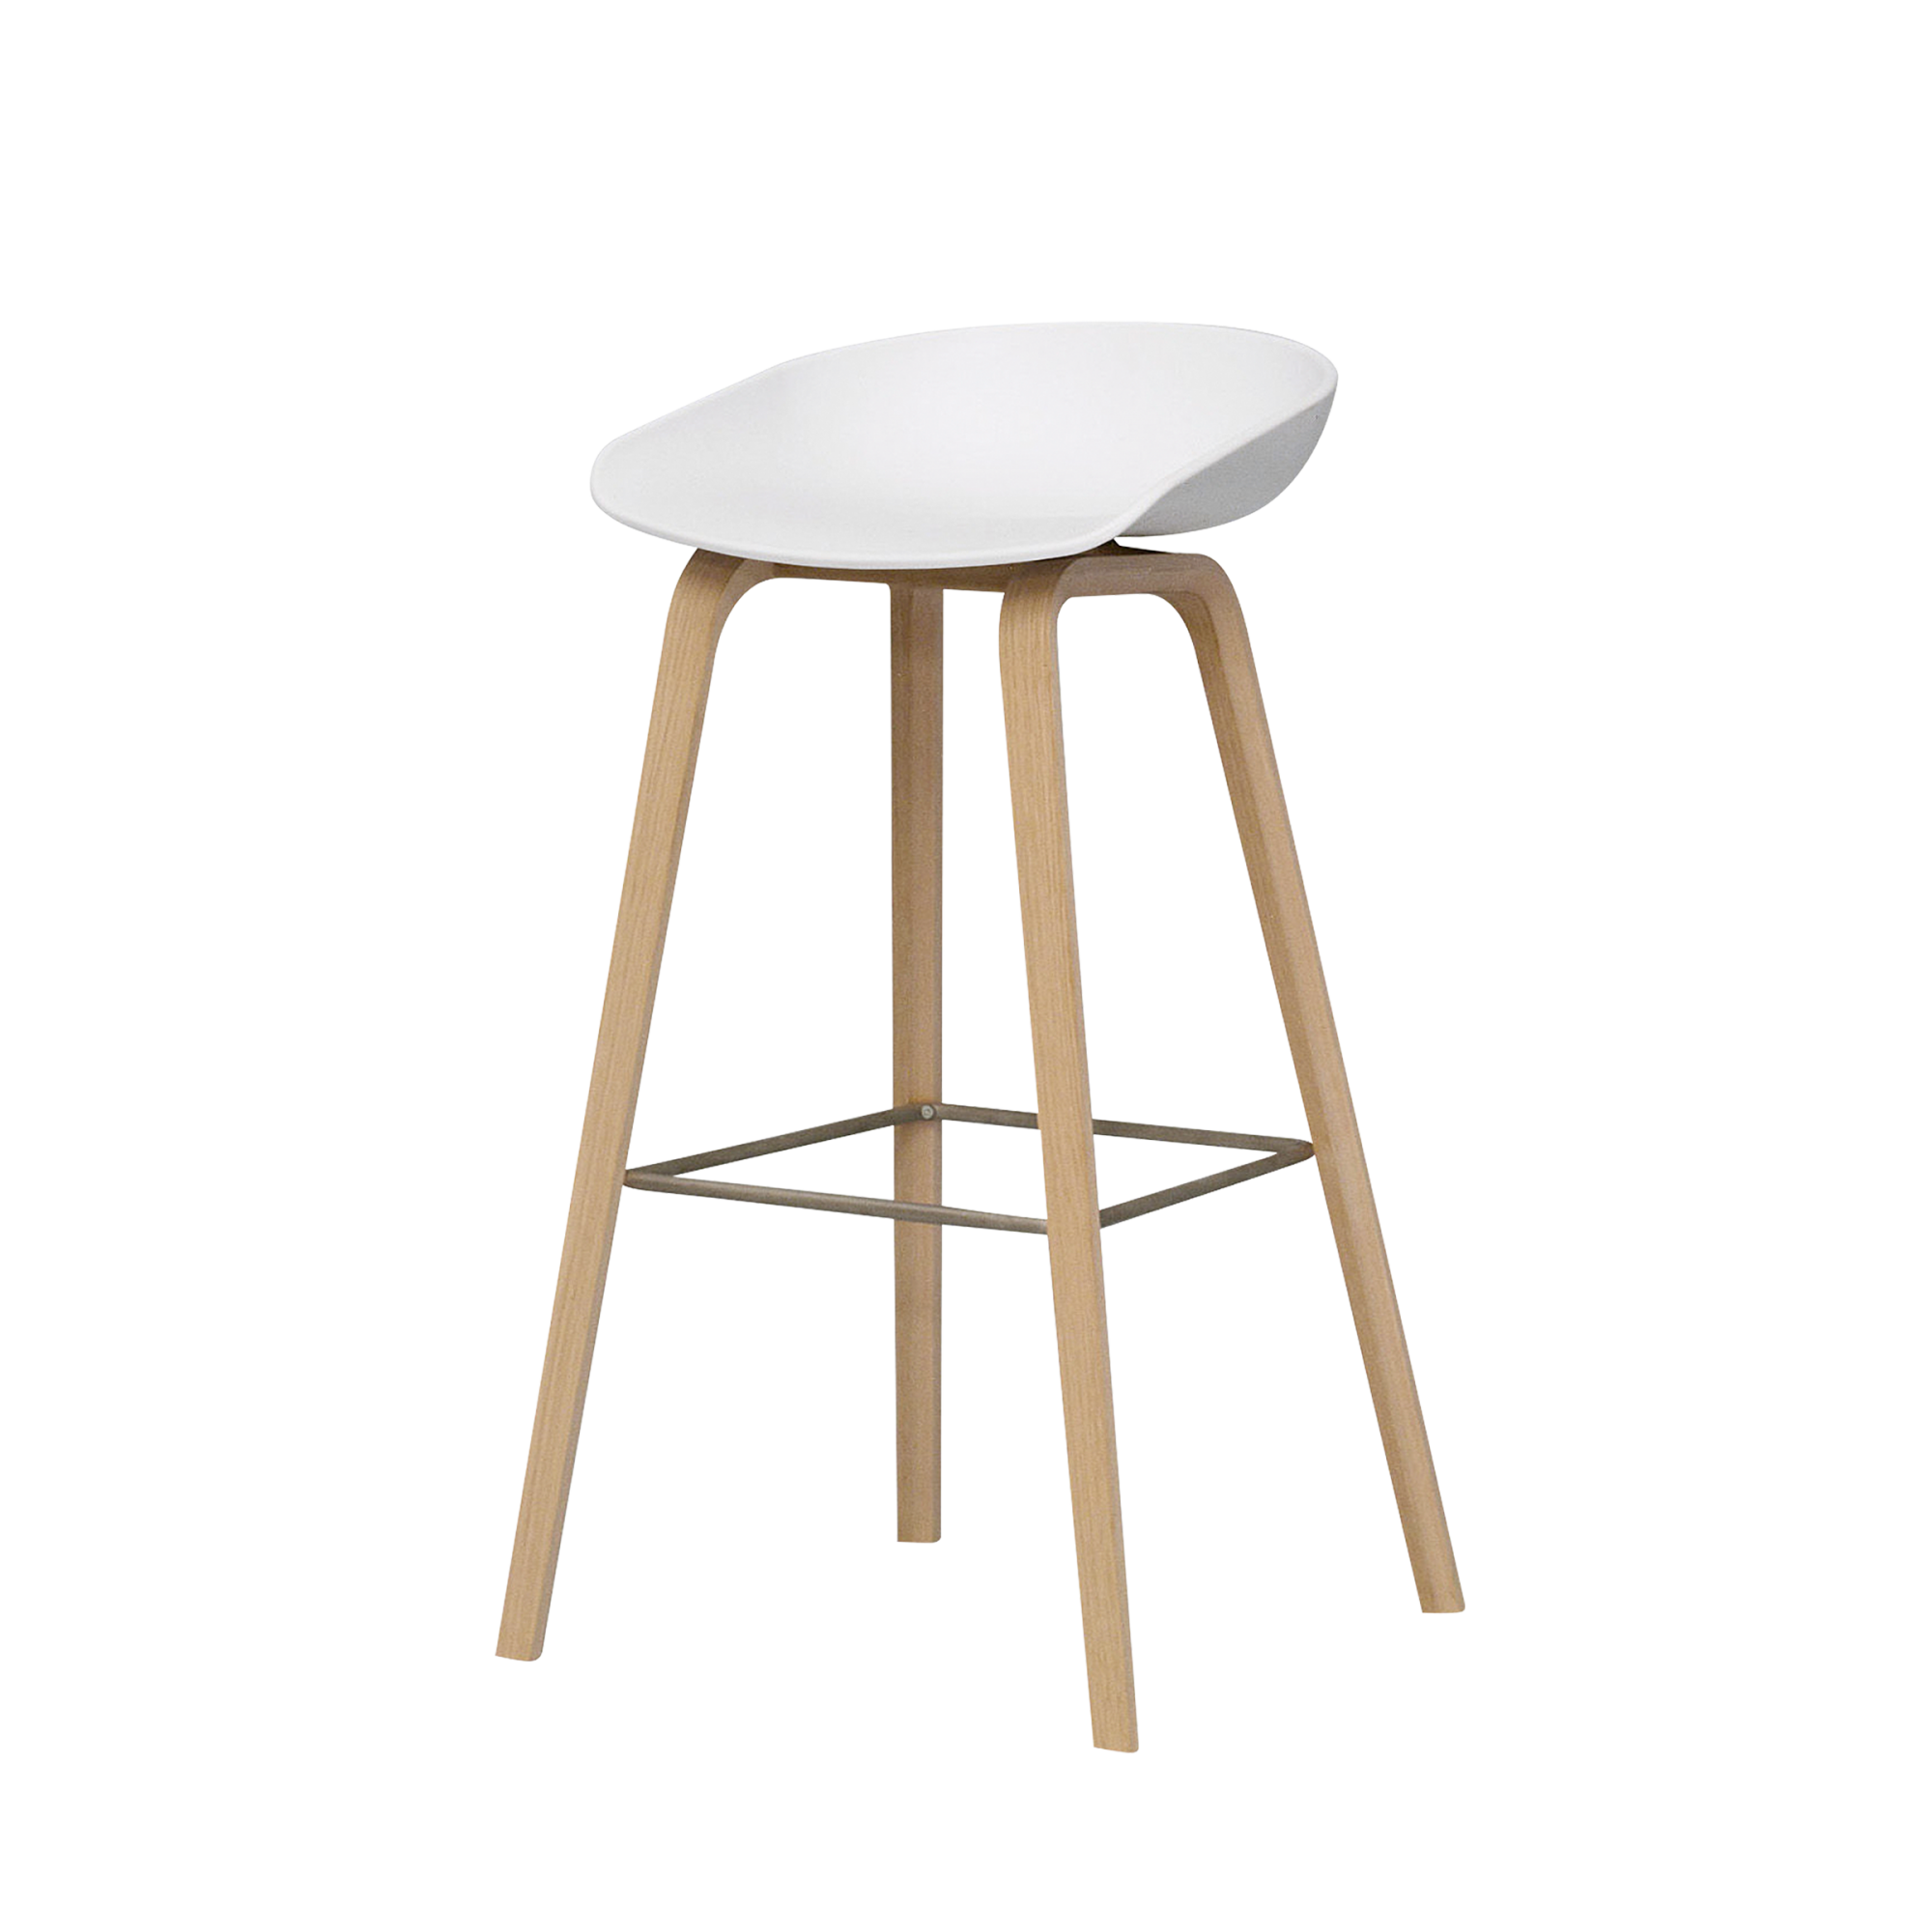 About A Stool Blanco Madera Alquiler